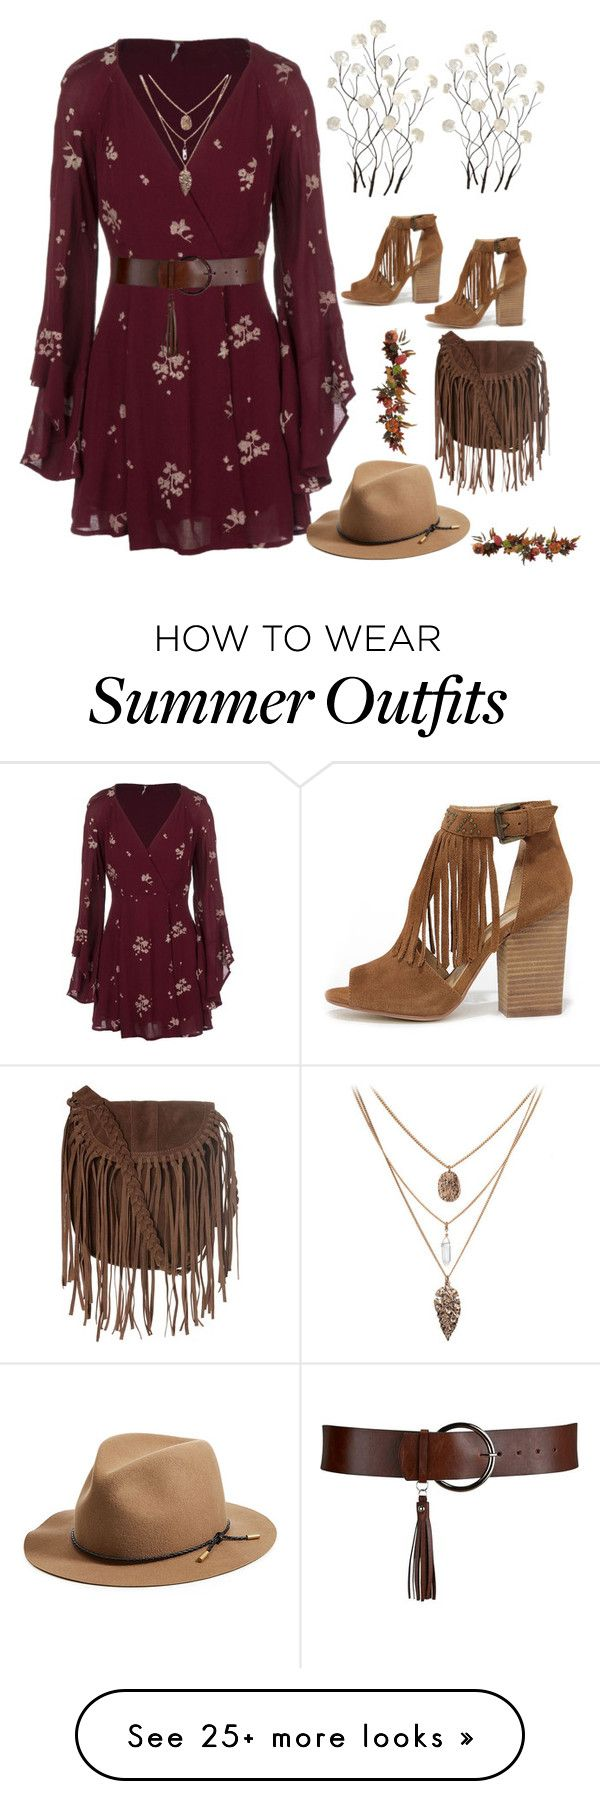 """""""Day Look 170 Coachella California Sun Summer Playsuit Bordeaux Outfit"""" by fashion-by-katrine on Polyvore featuring Chinese Laundry, Free People, Glamorous, rag & bone, Universal Lighting and Decor and Nearly Natural"""